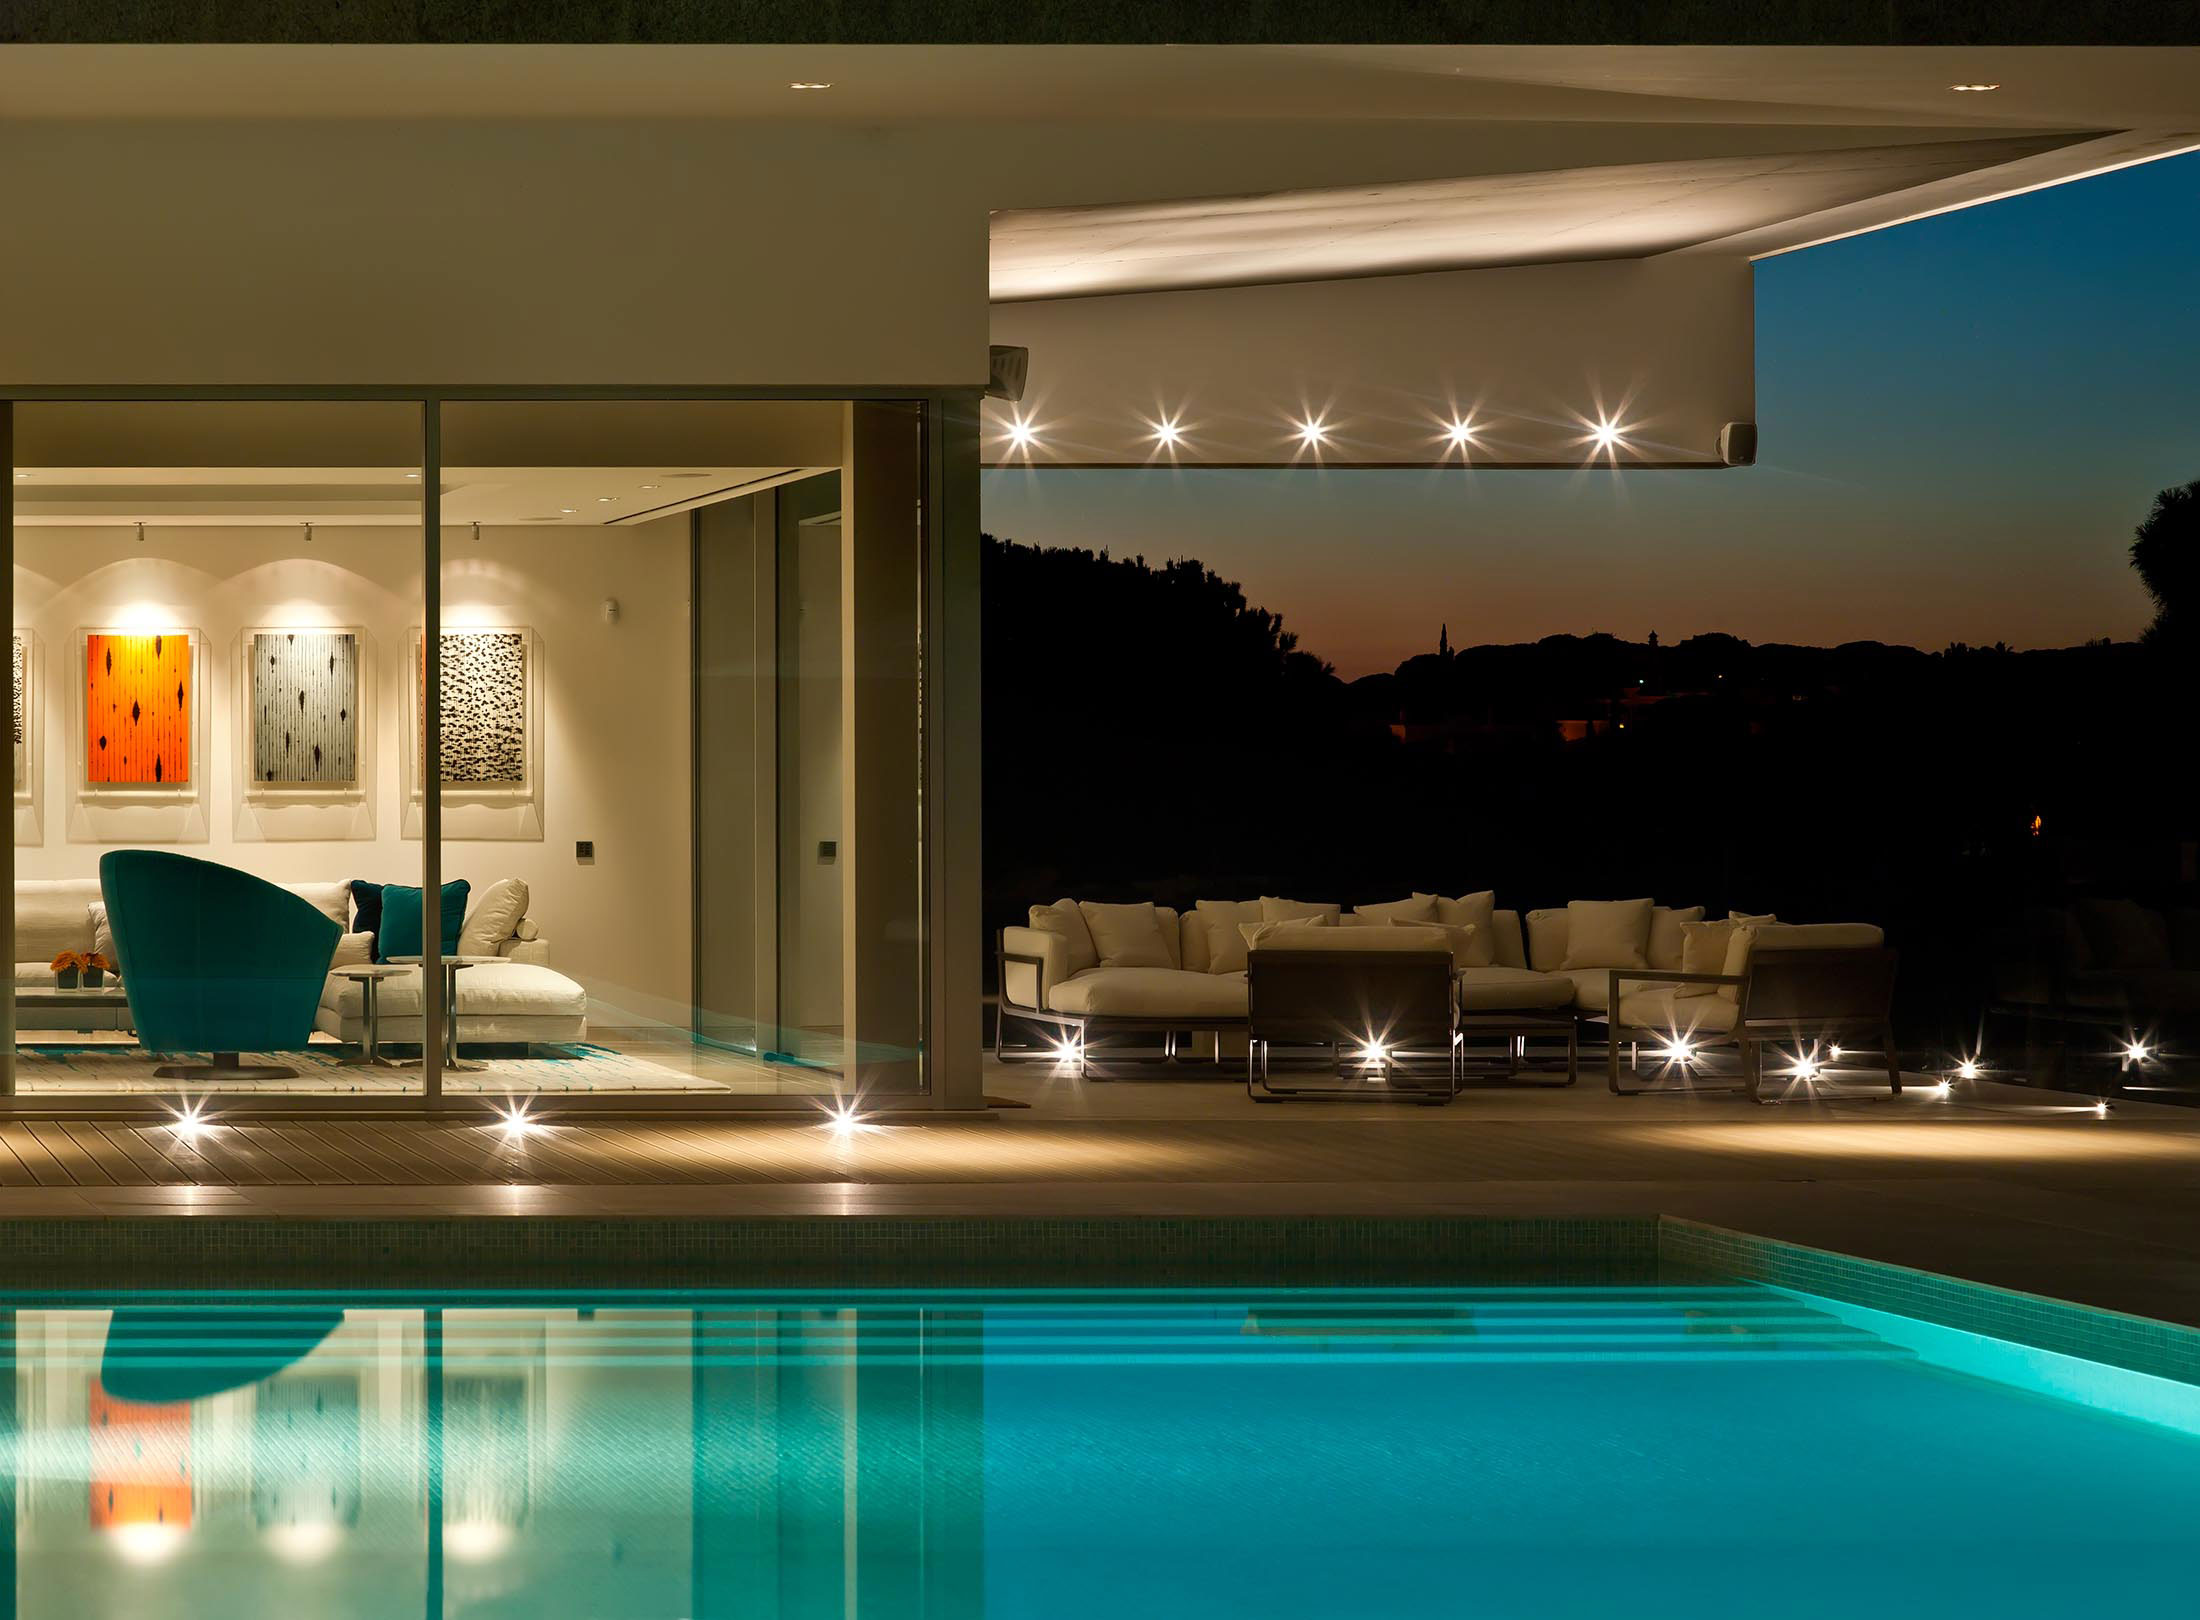 Pool, Evening, Lighting, Family House in Portugal